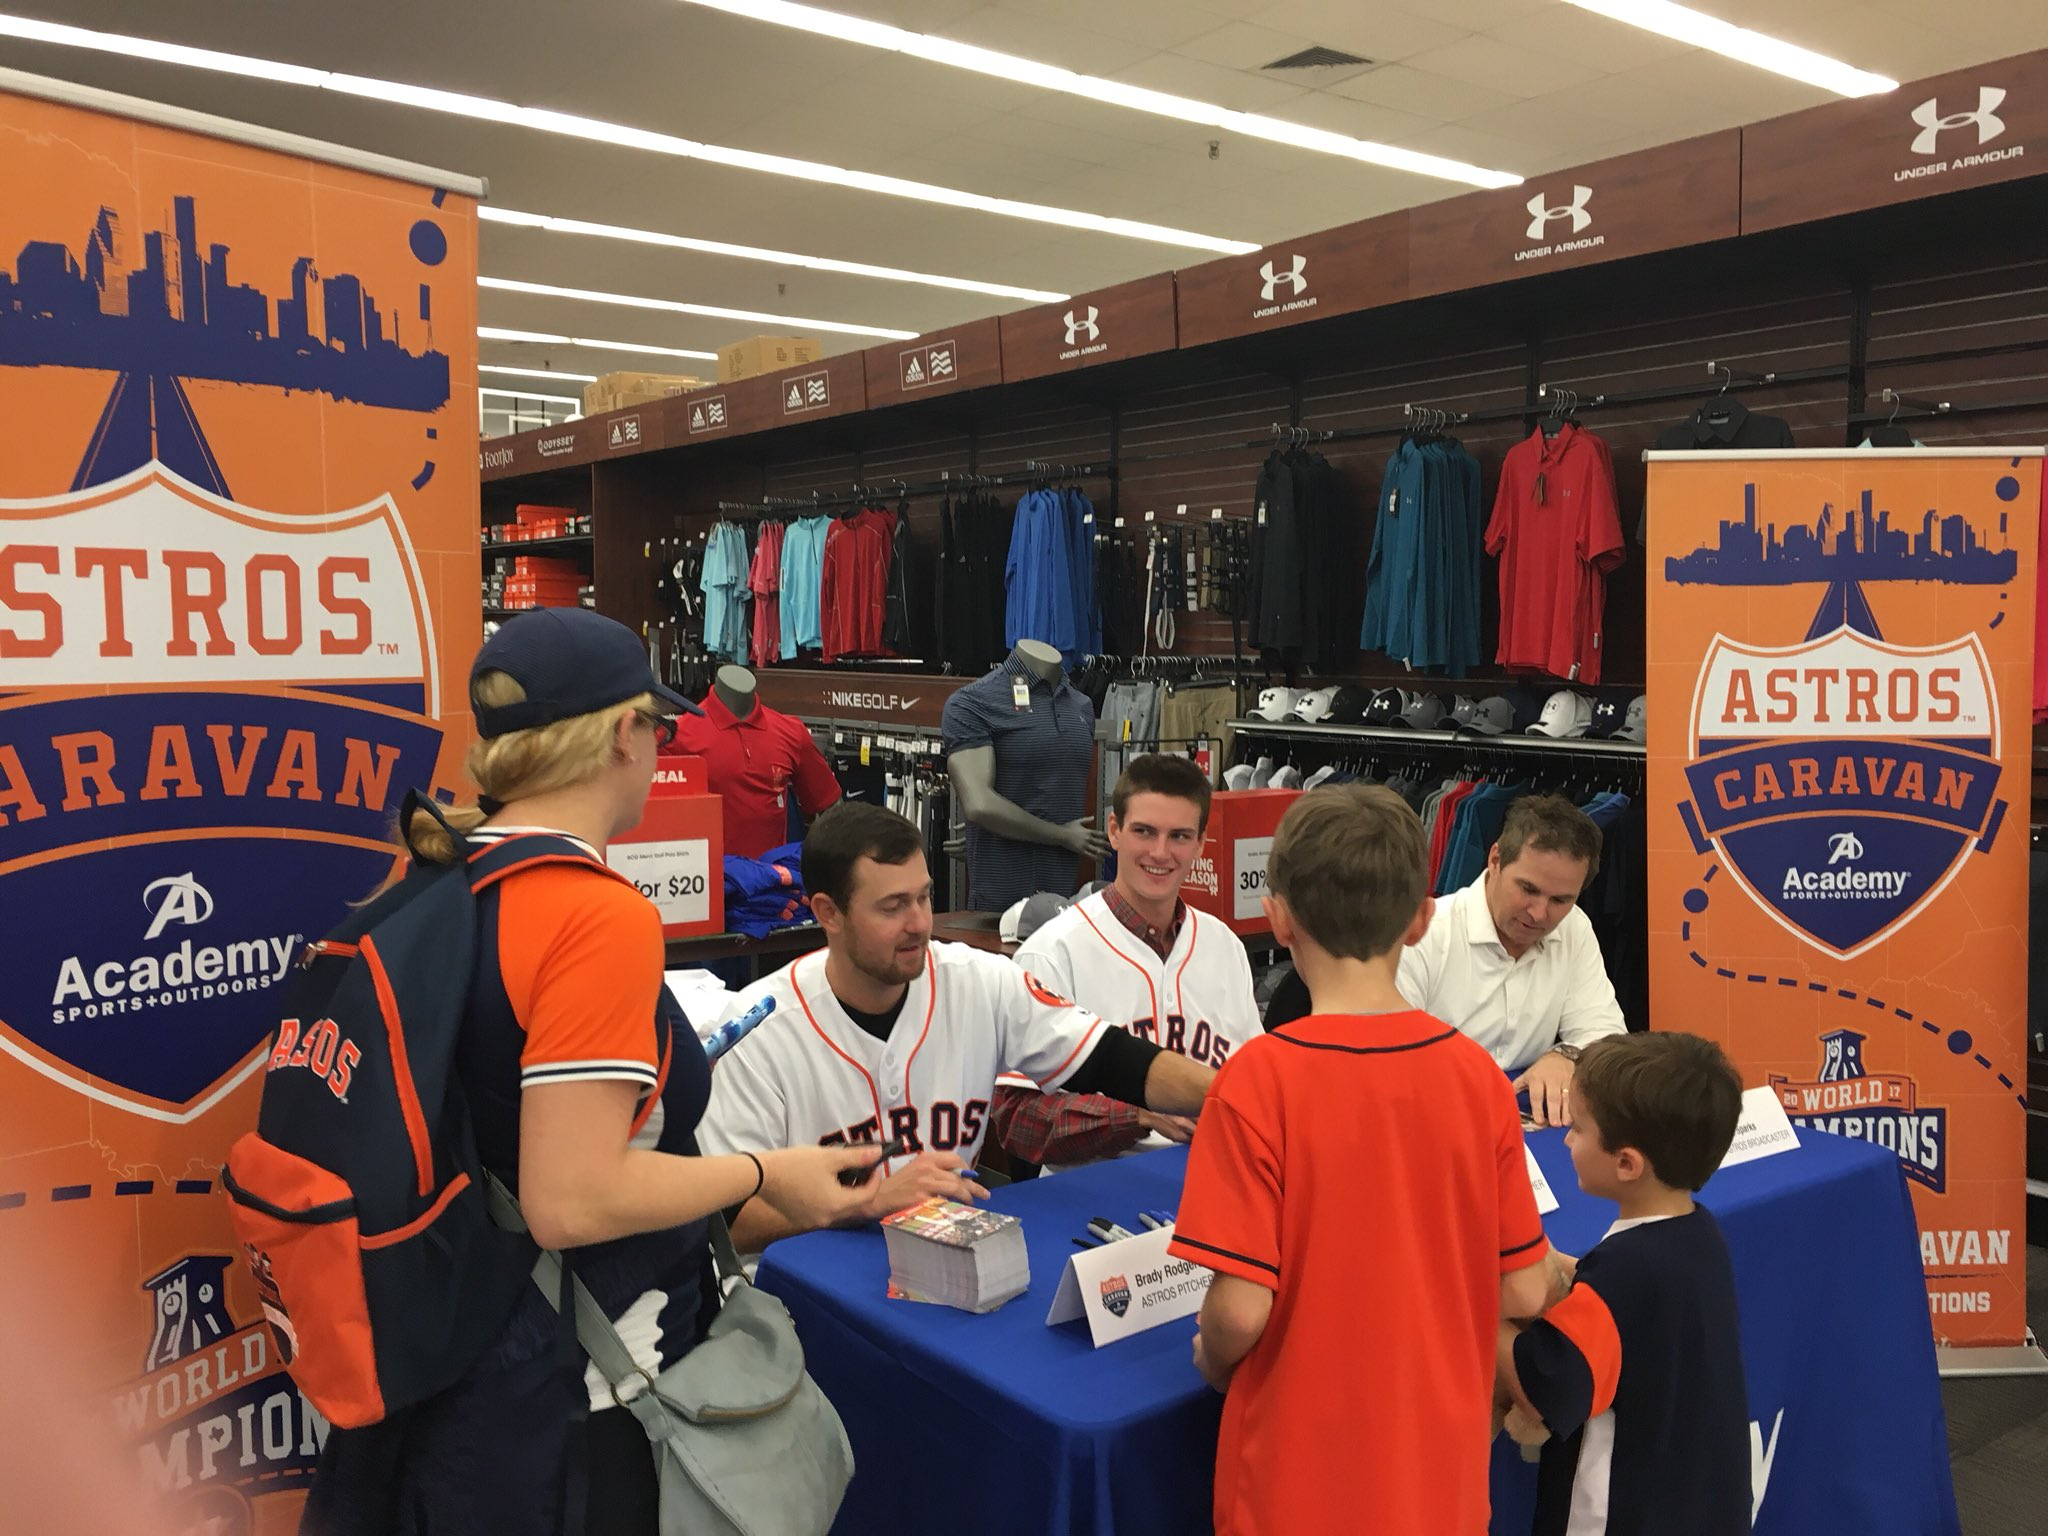 Up next: an autograph appearance at @Academy. ✍️  #AstrosCaravan https://t.co/SpTbHQA31N